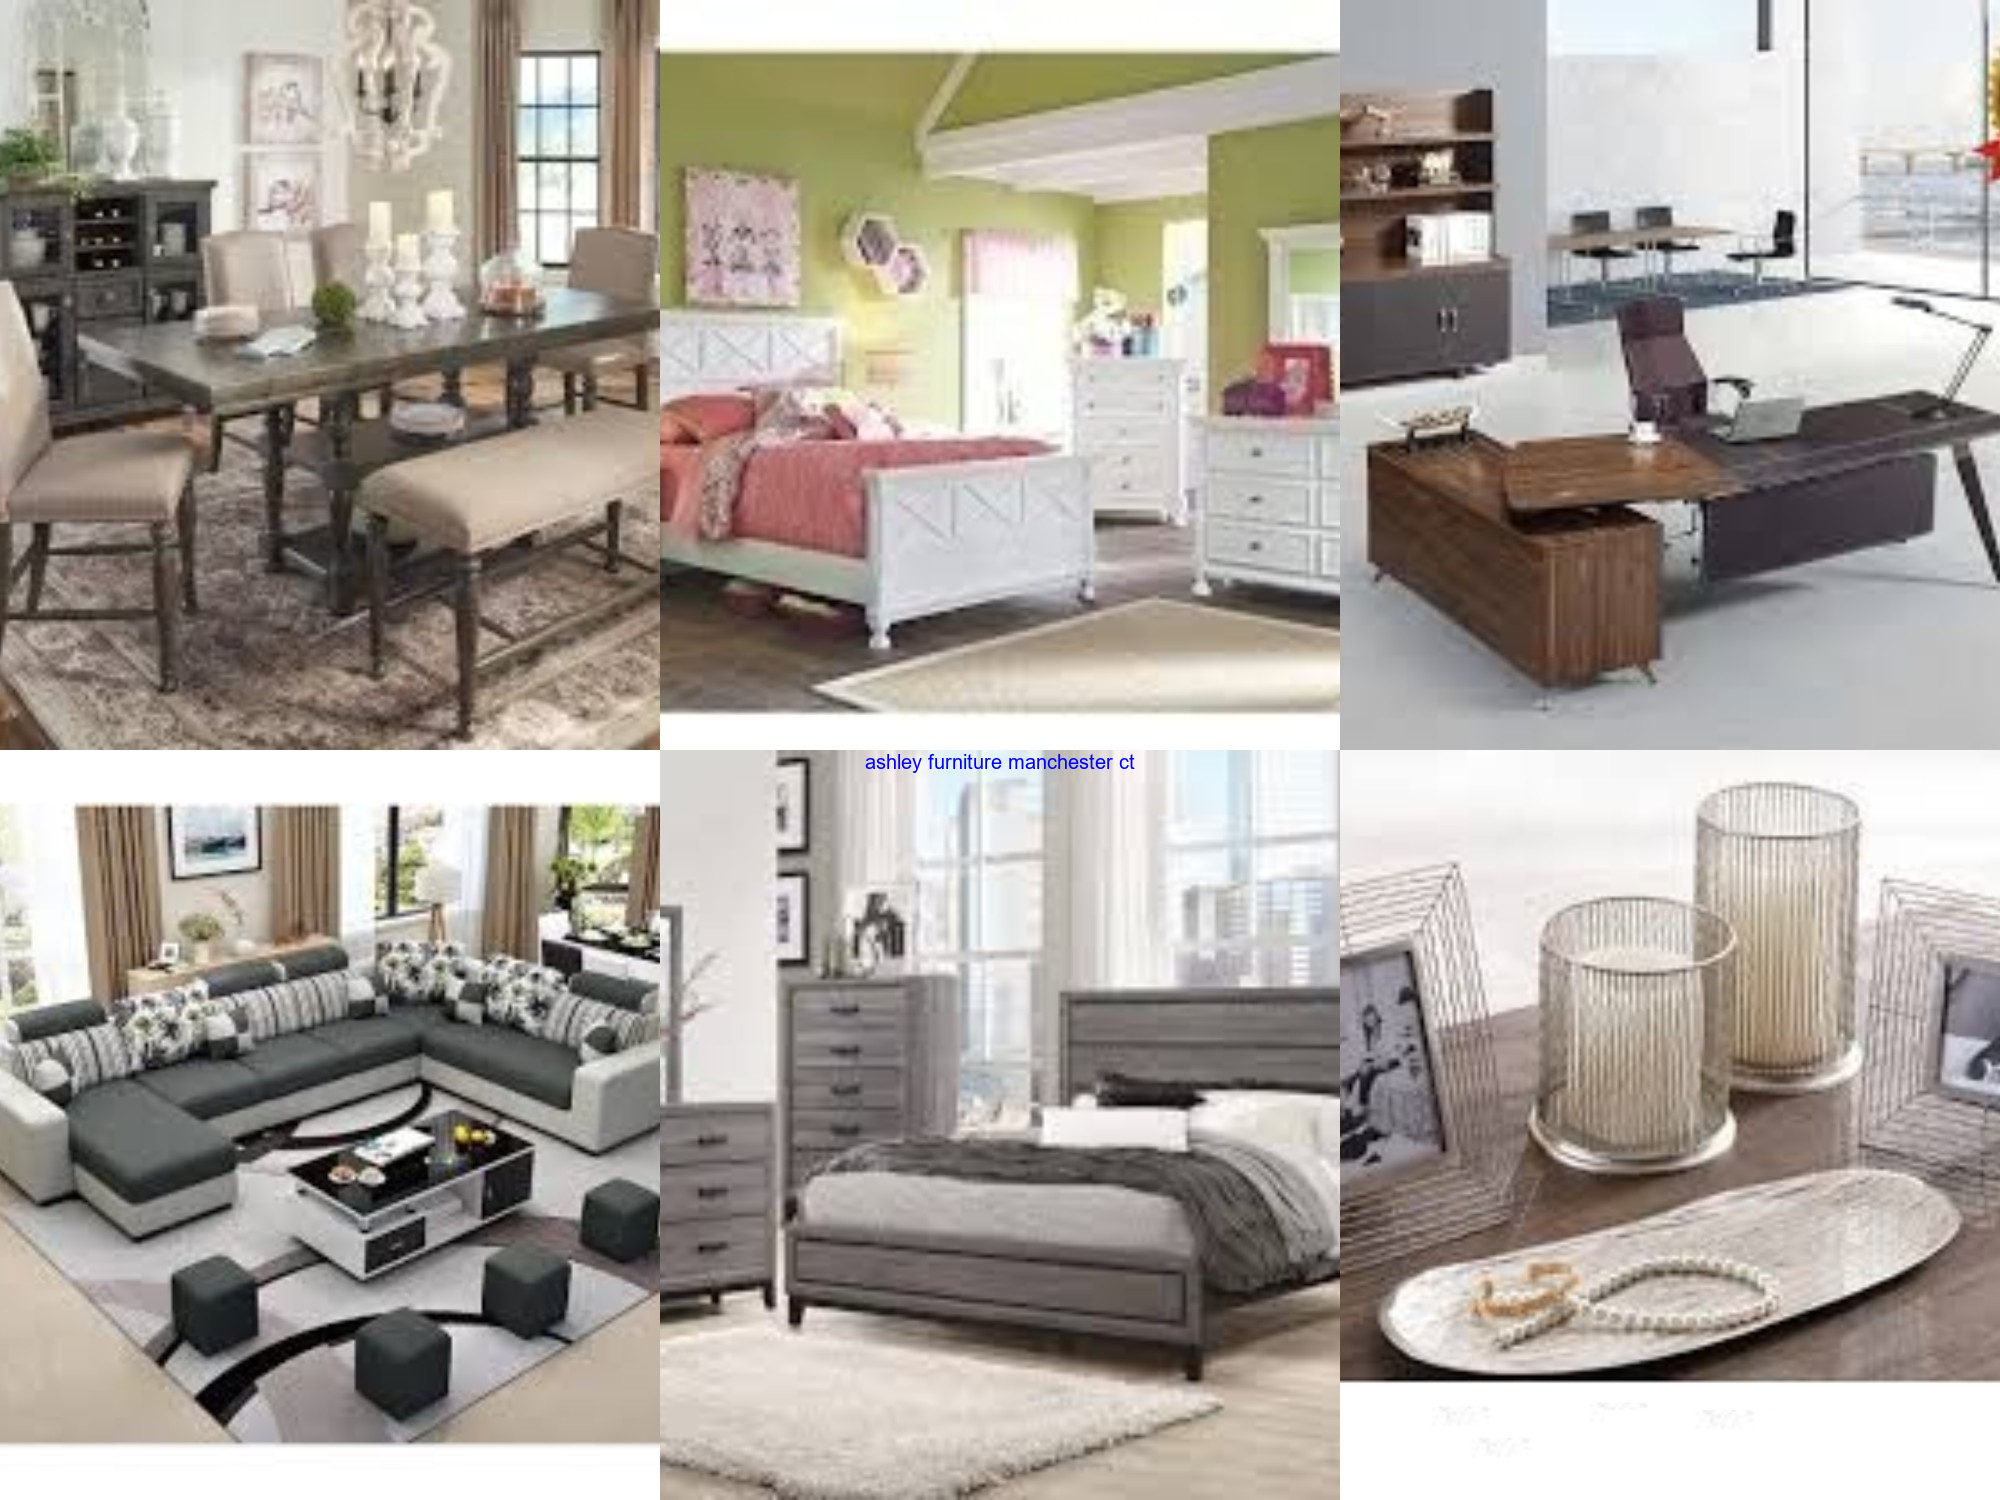 Ashley Furniture Manchester Ct In 2020 Value City Furniture